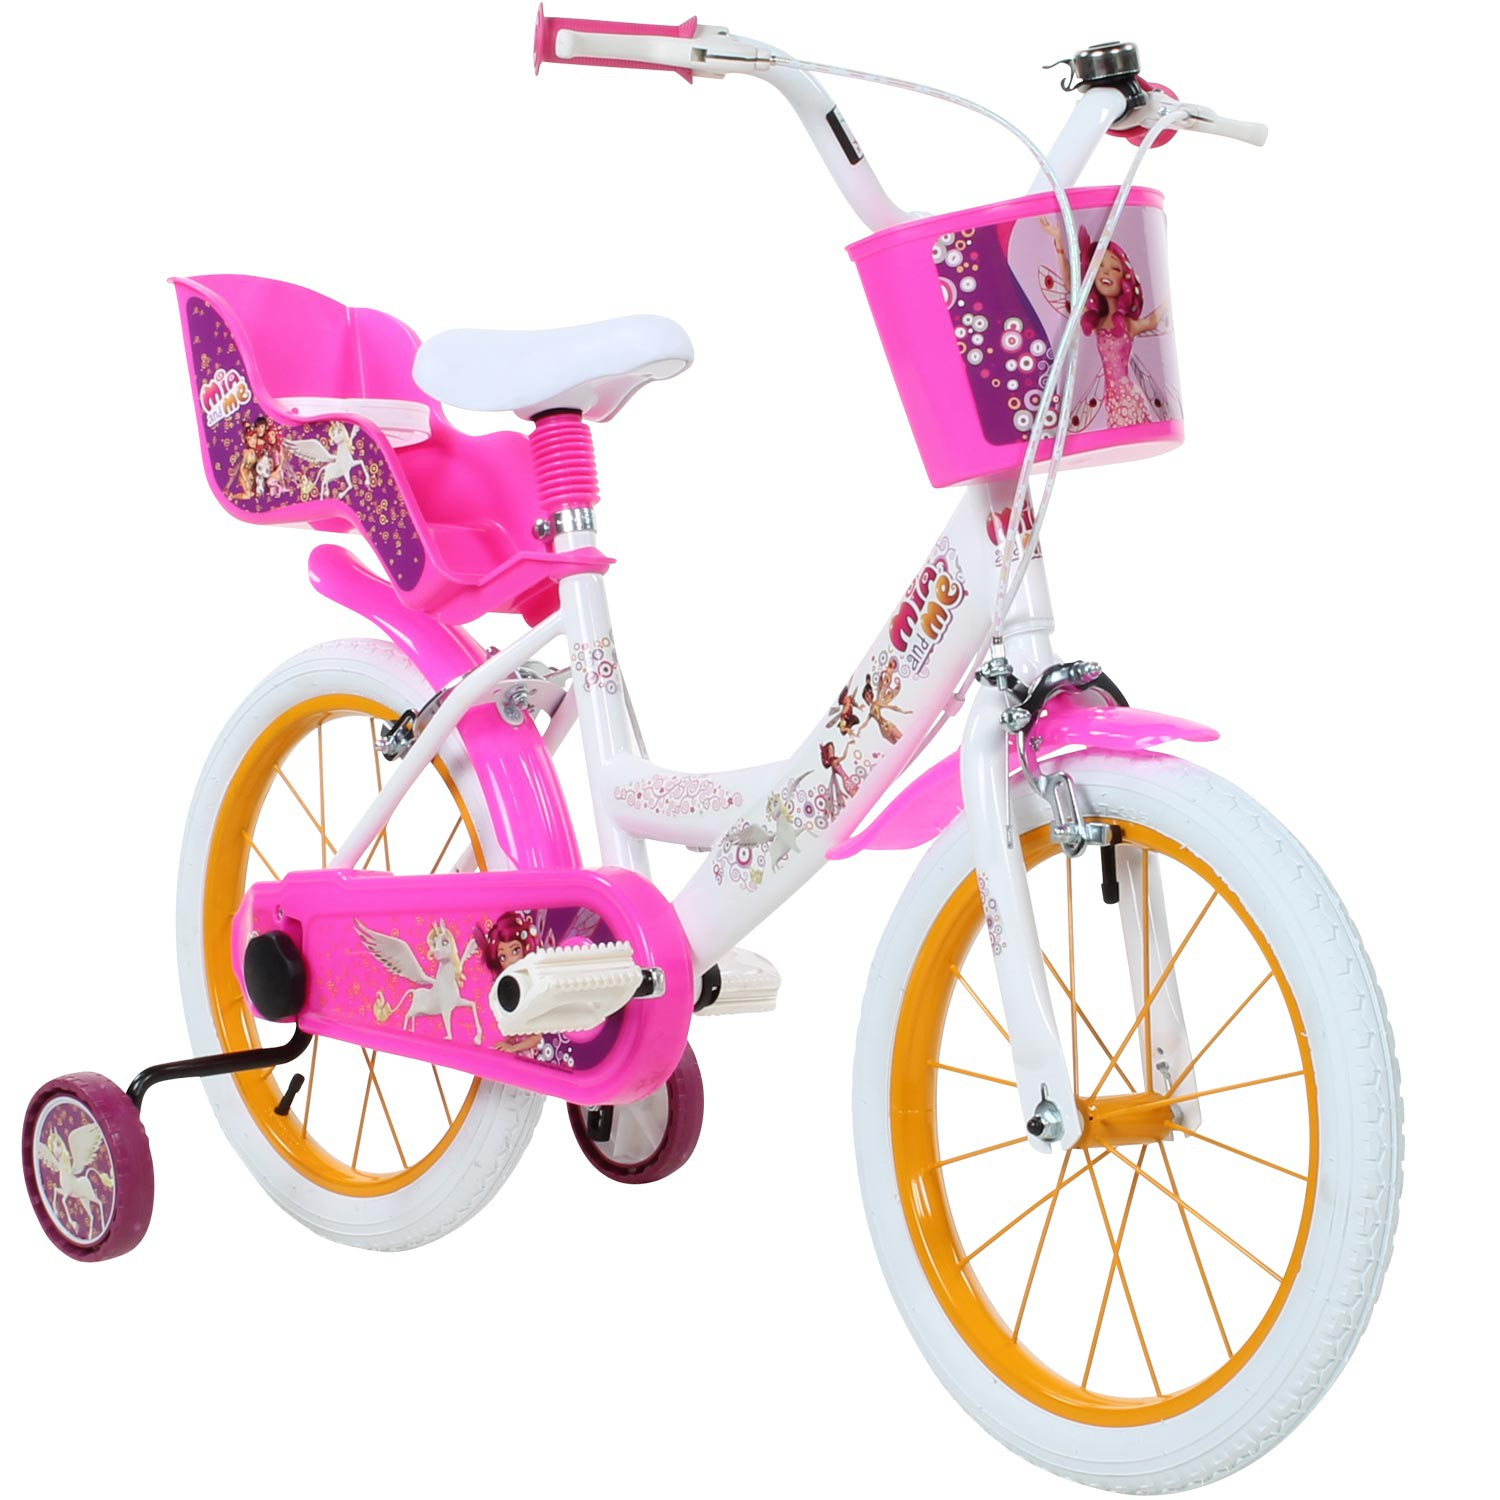 kinderfahrrad 16 zoll mia and me kinder anf nger fahrrad. Black Bedroom Furniture Sets. Home Design Ideas